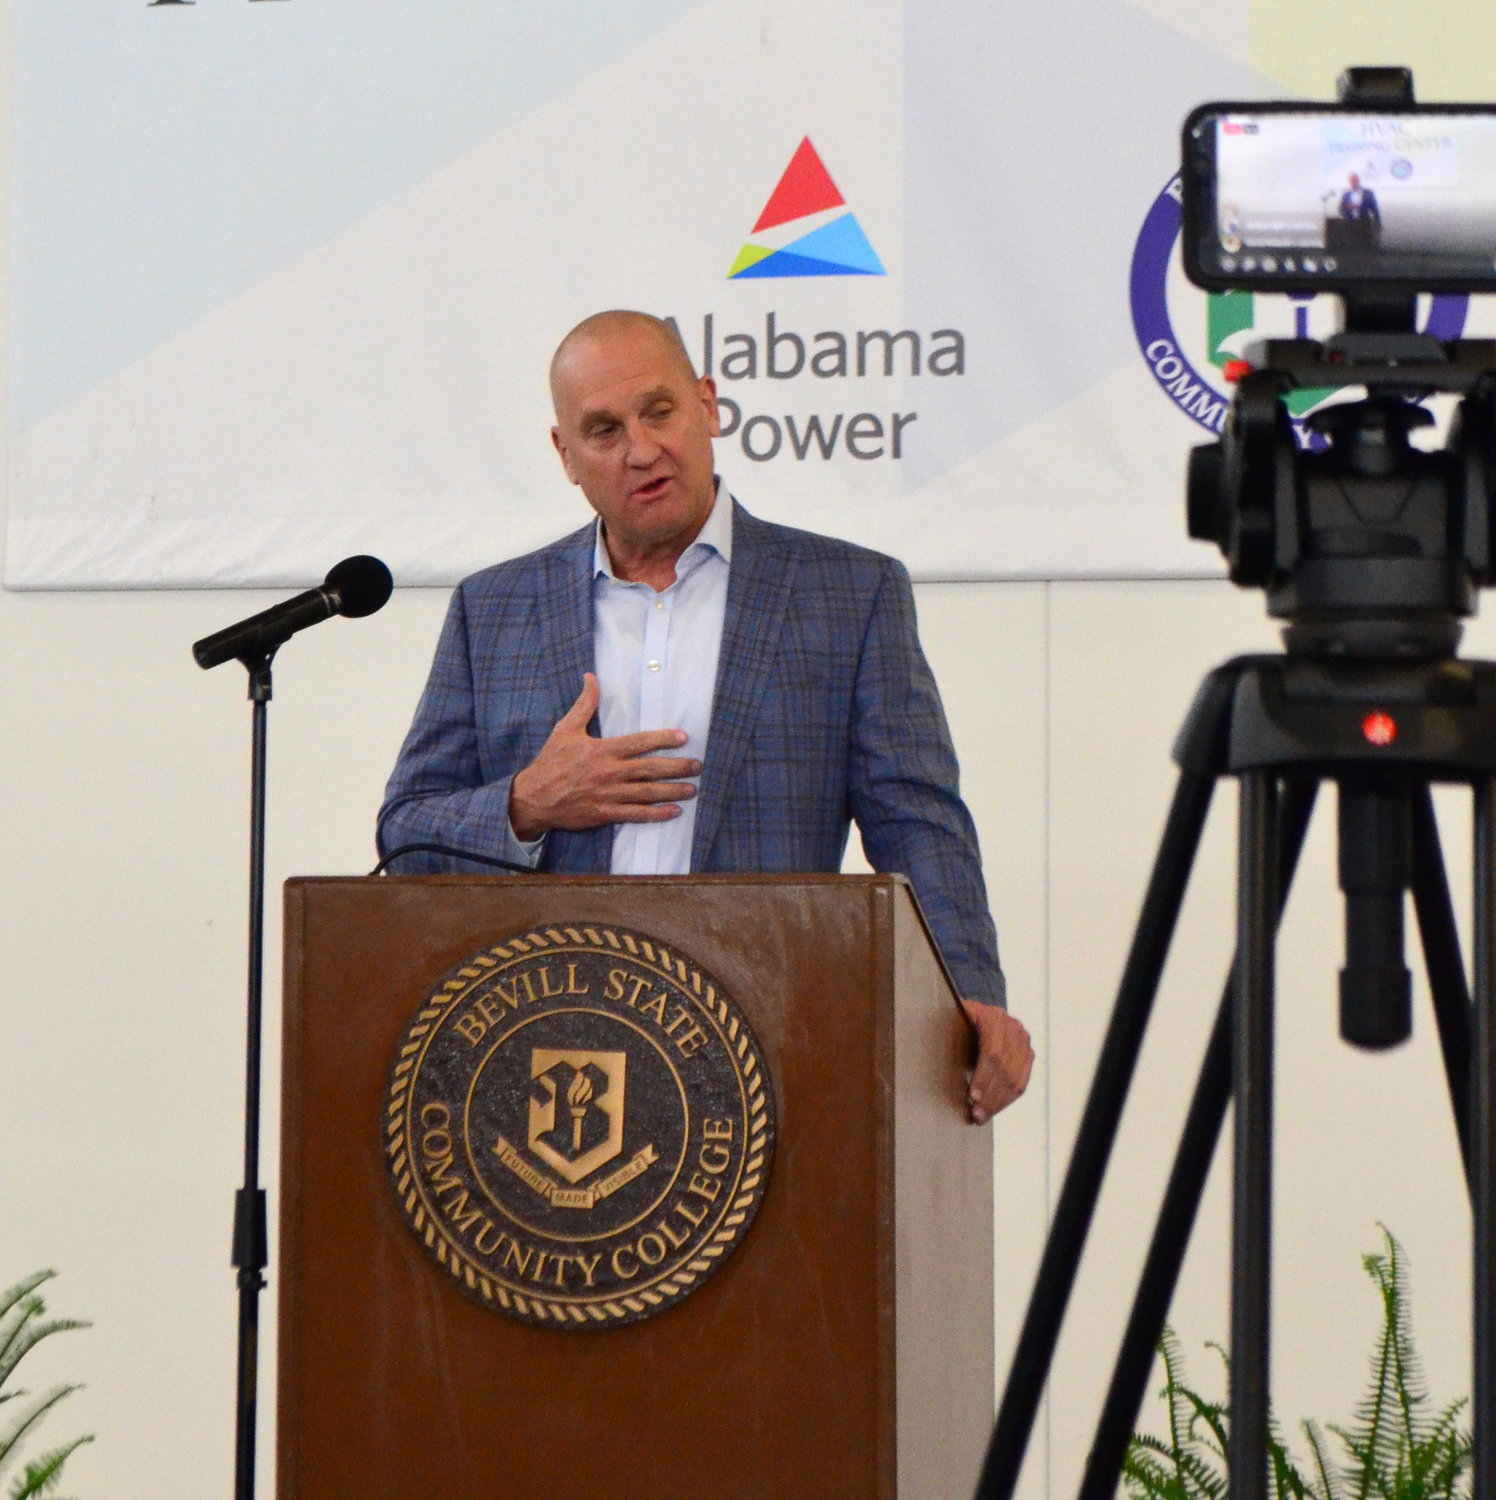 Jeff Peoples of Alabama Power spoke on Tuesday of the strong partnership between the power company and Bevill State Community College.